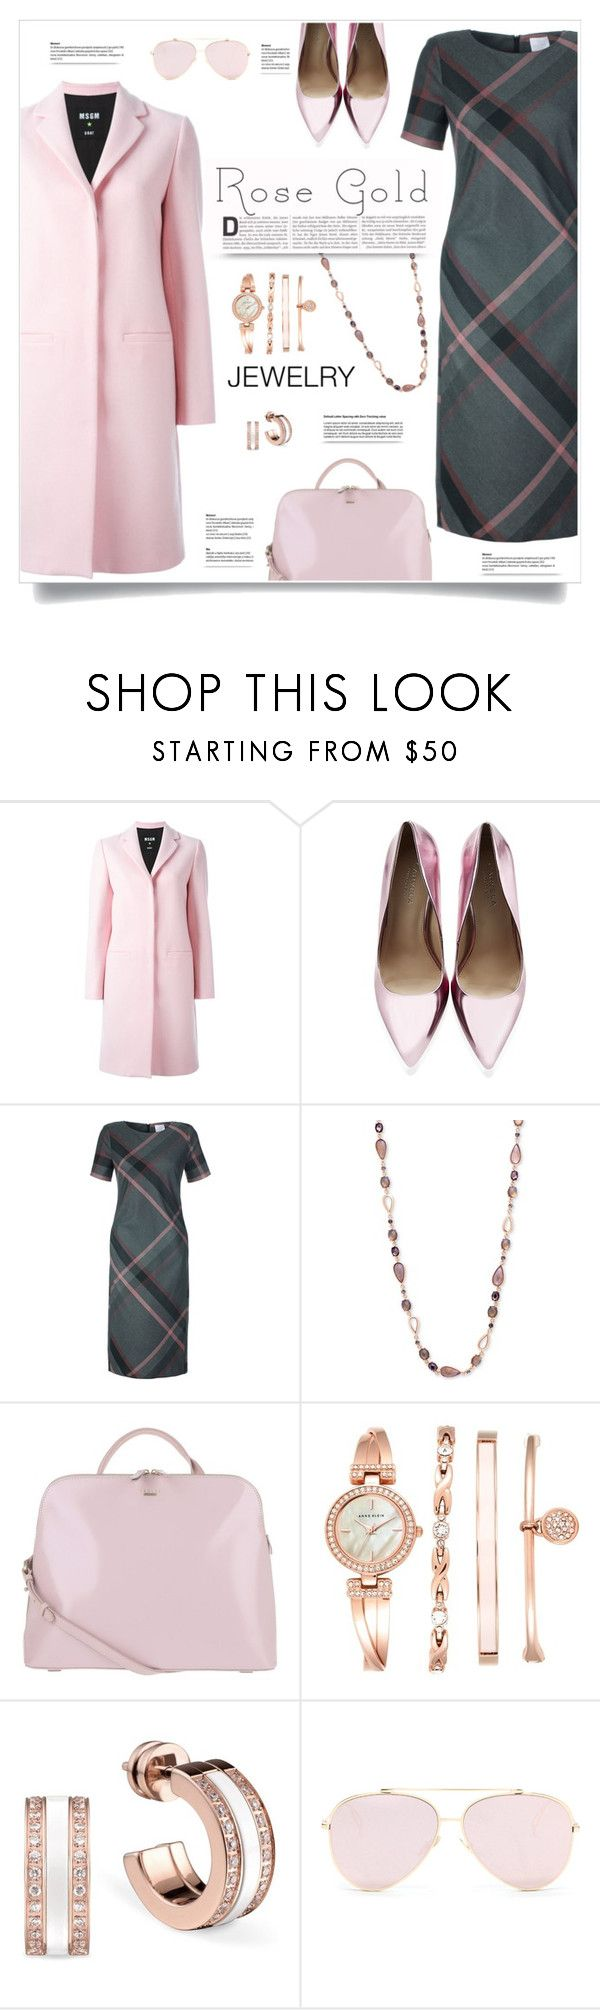 """""""Rose Gold Jewelry"""" by kiki-bi ❤ liked on Polyvore featuring MSGM, Carvela Kurt Geiger, Anne Klein, Radley, jewelry and rosegold"""